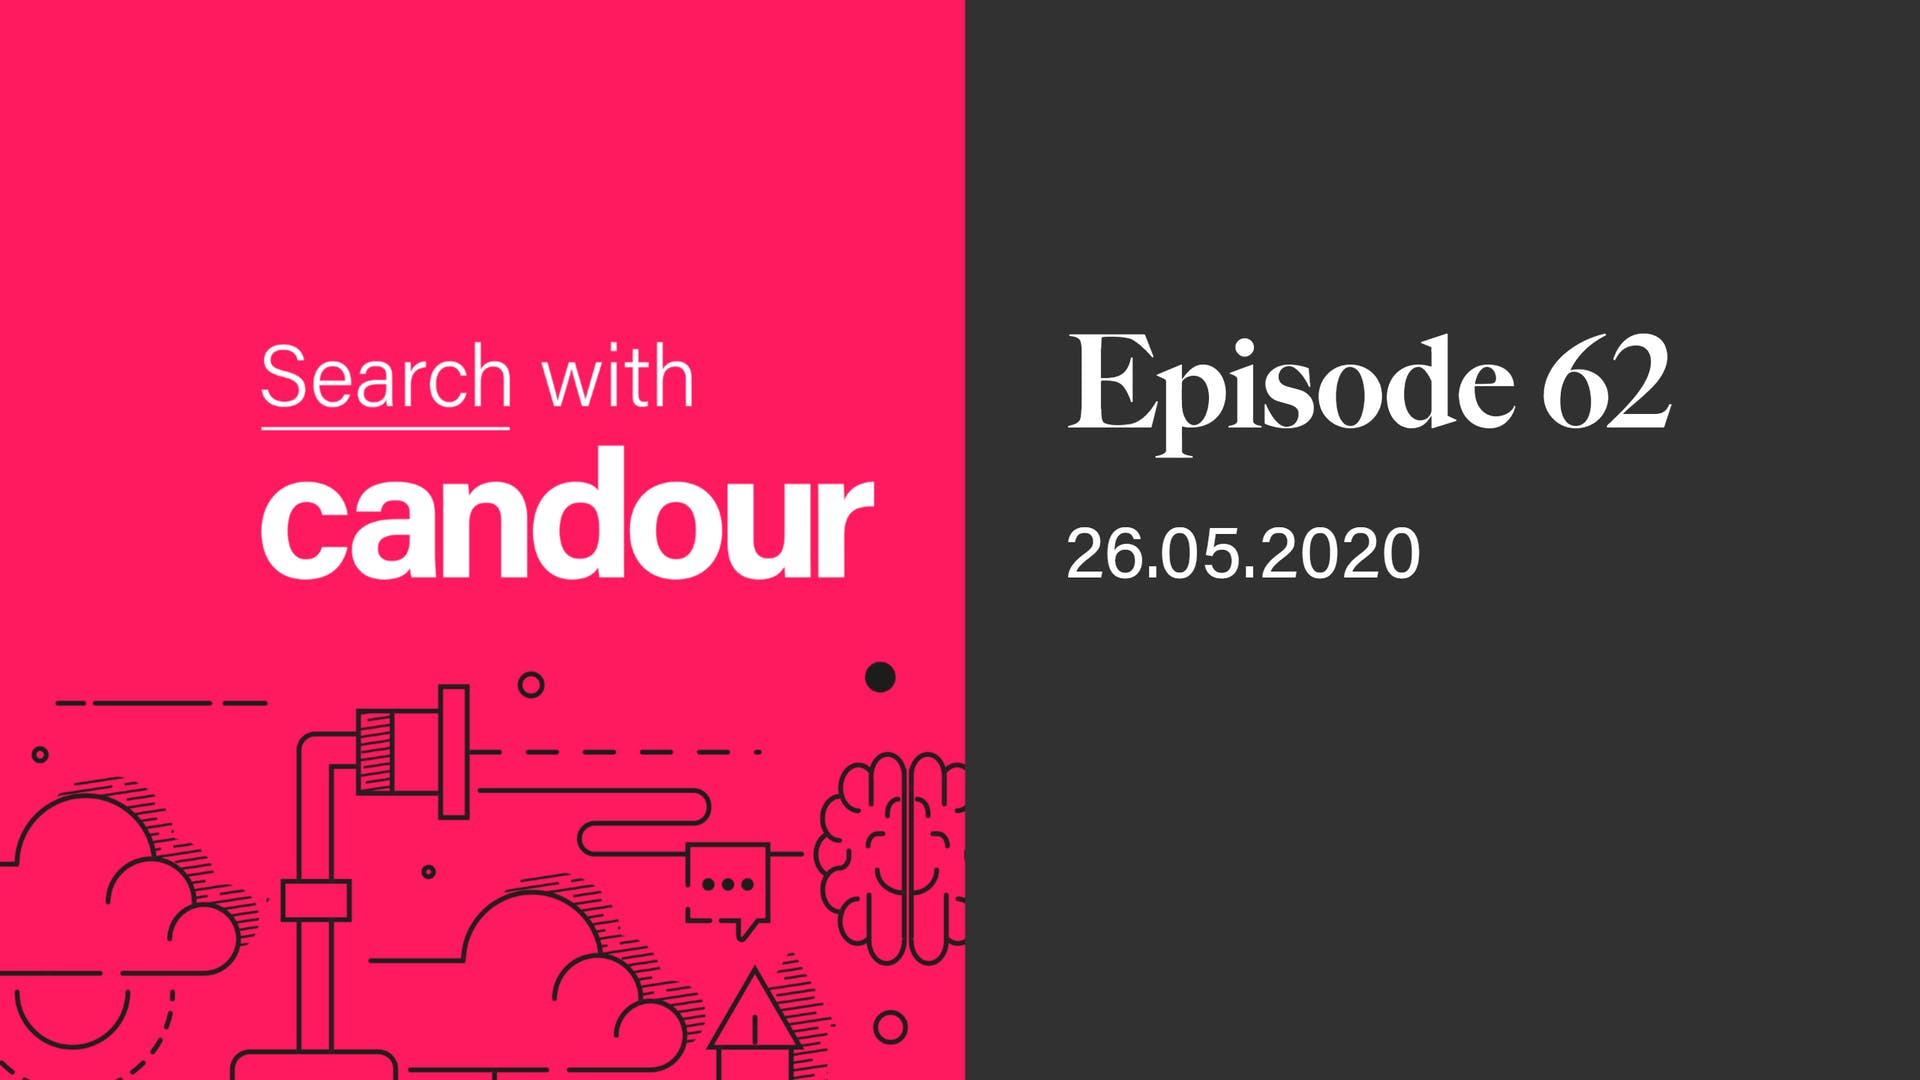 Episode 62 - Search with Candour